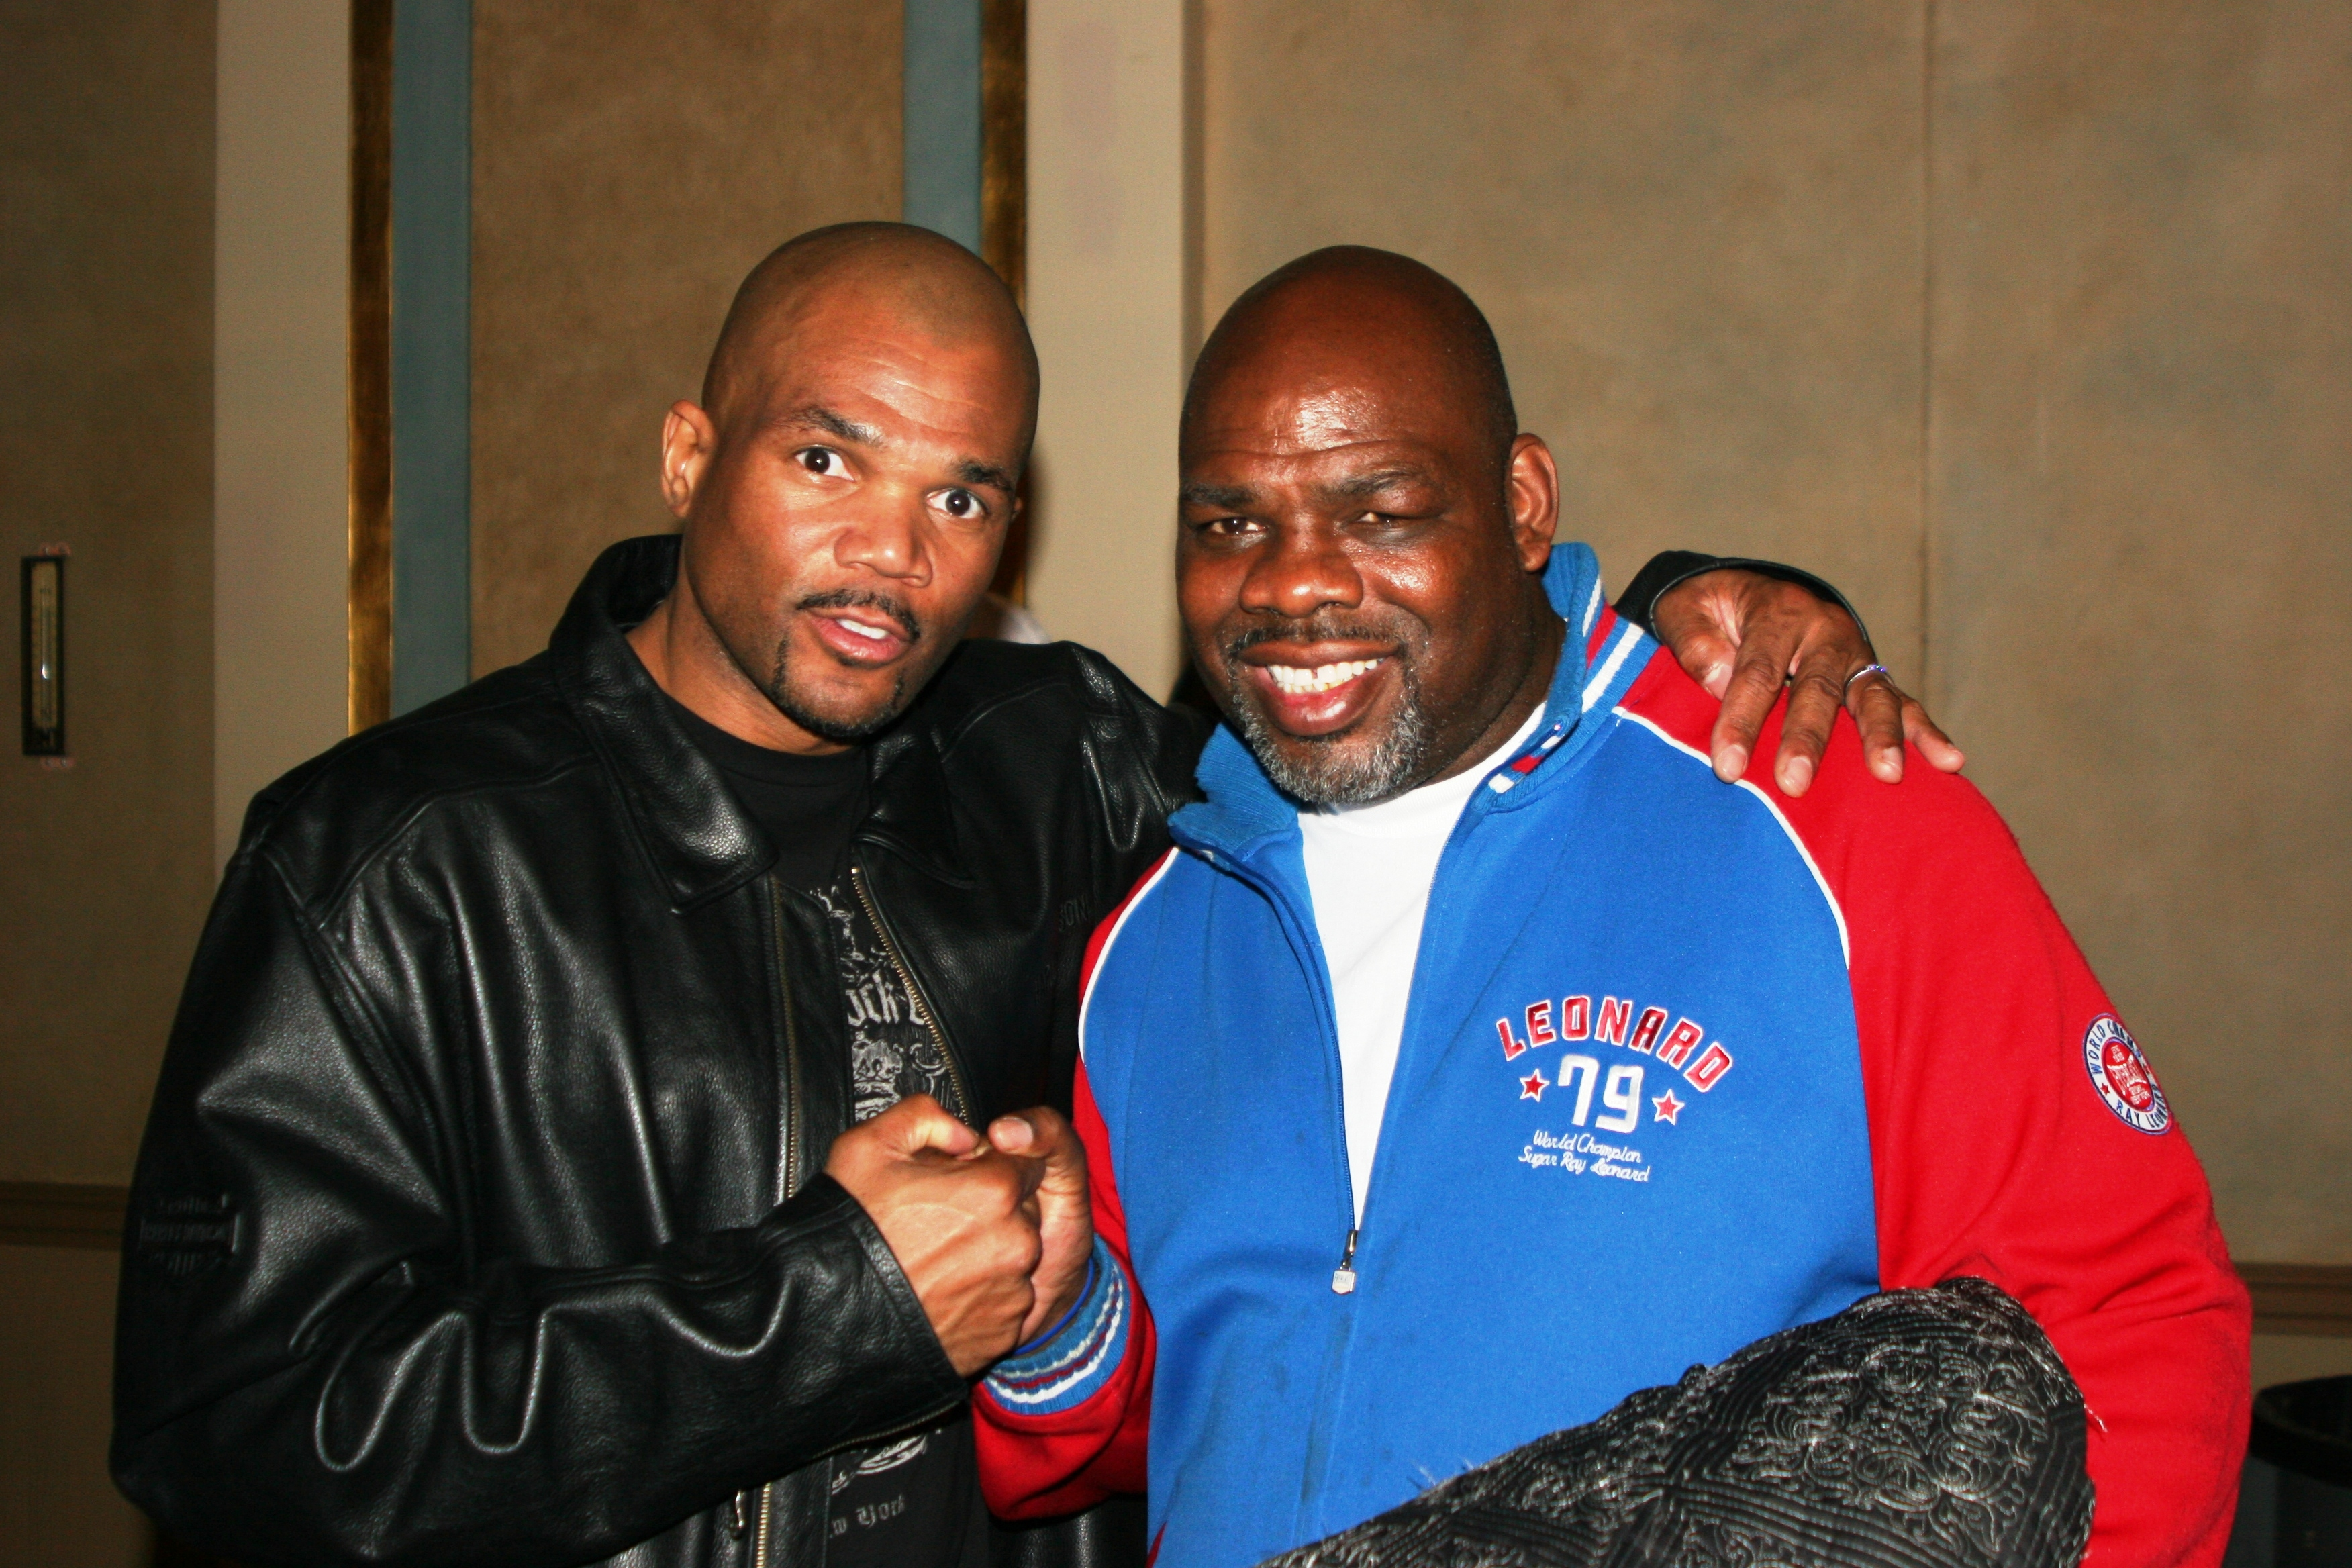 Run d mc (l) and Iran Barkley